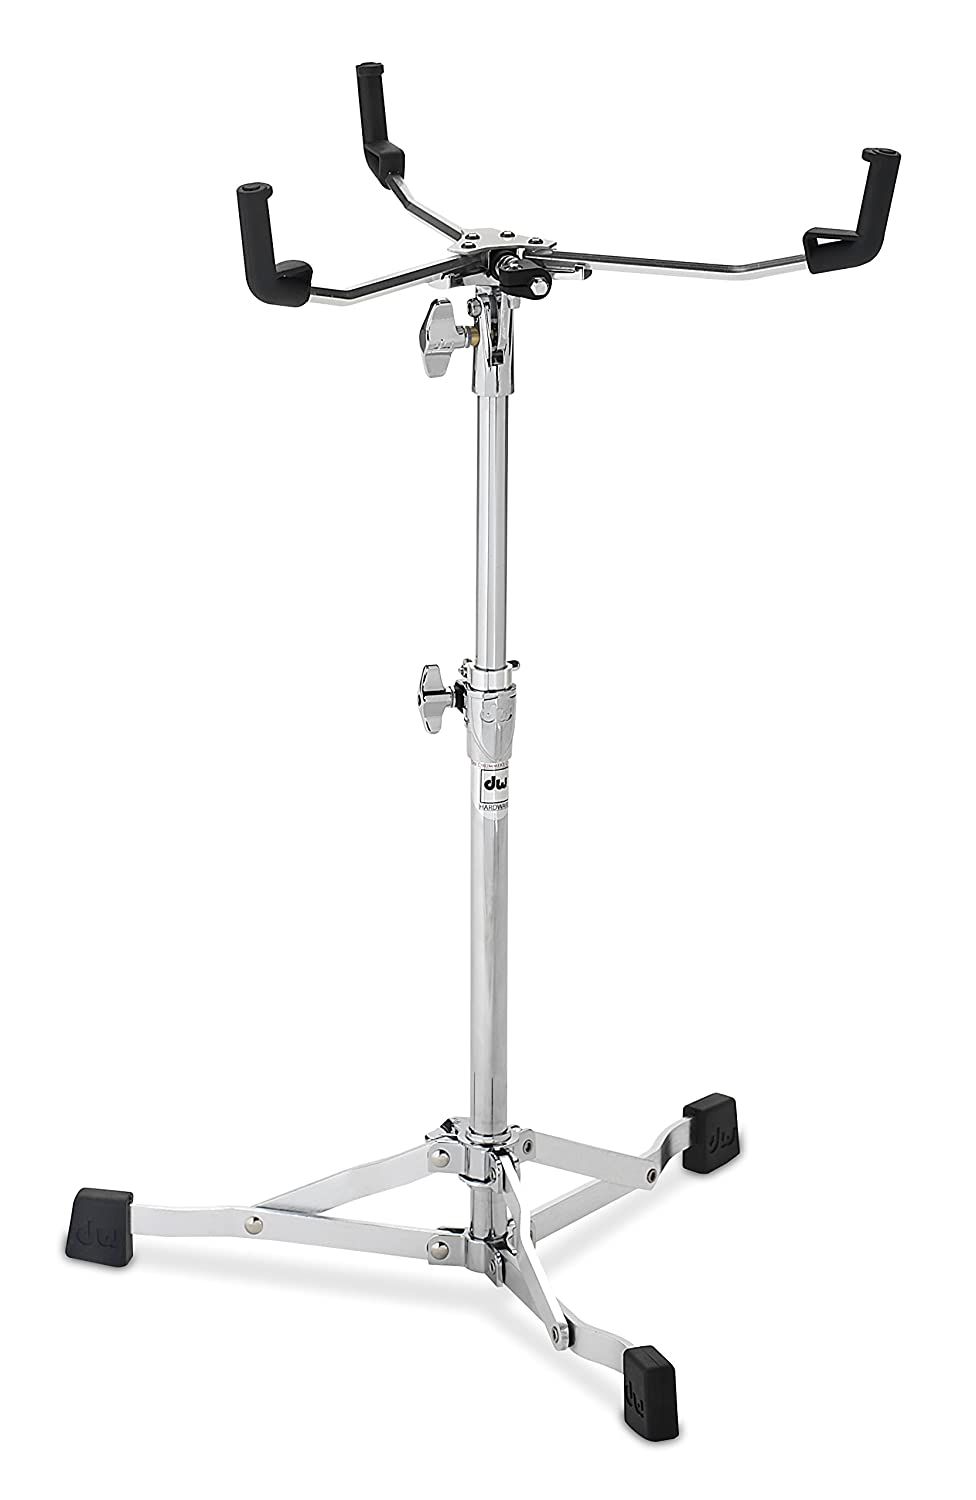 drum workshop SNARE STAND ULTRALIGHT DWCP6300UL